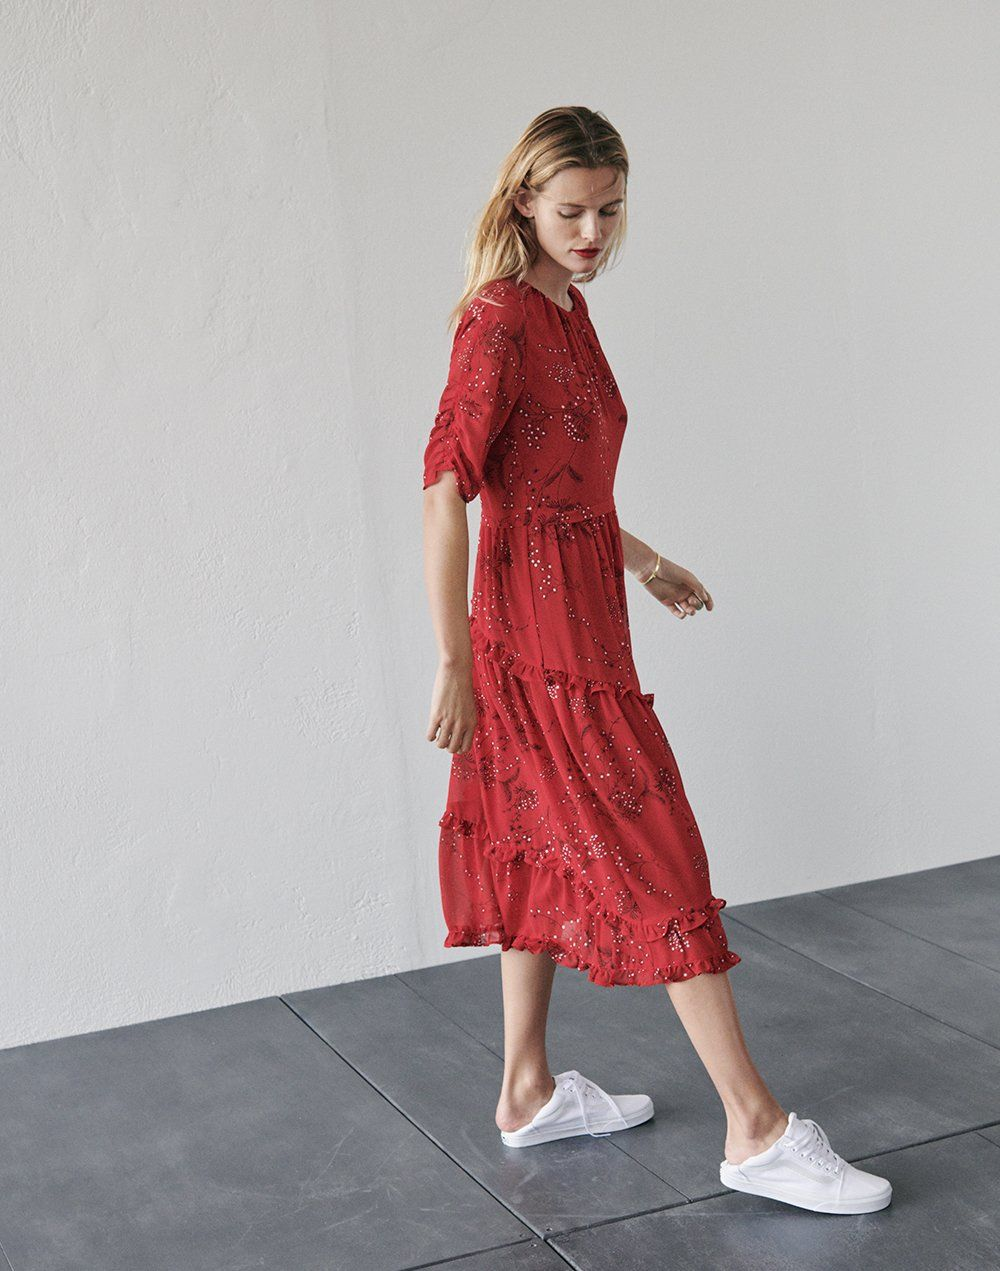 5a05a9859c2 madewell windpoppy ruffle midi dress worn with vans old skool lace-up  sneakers.